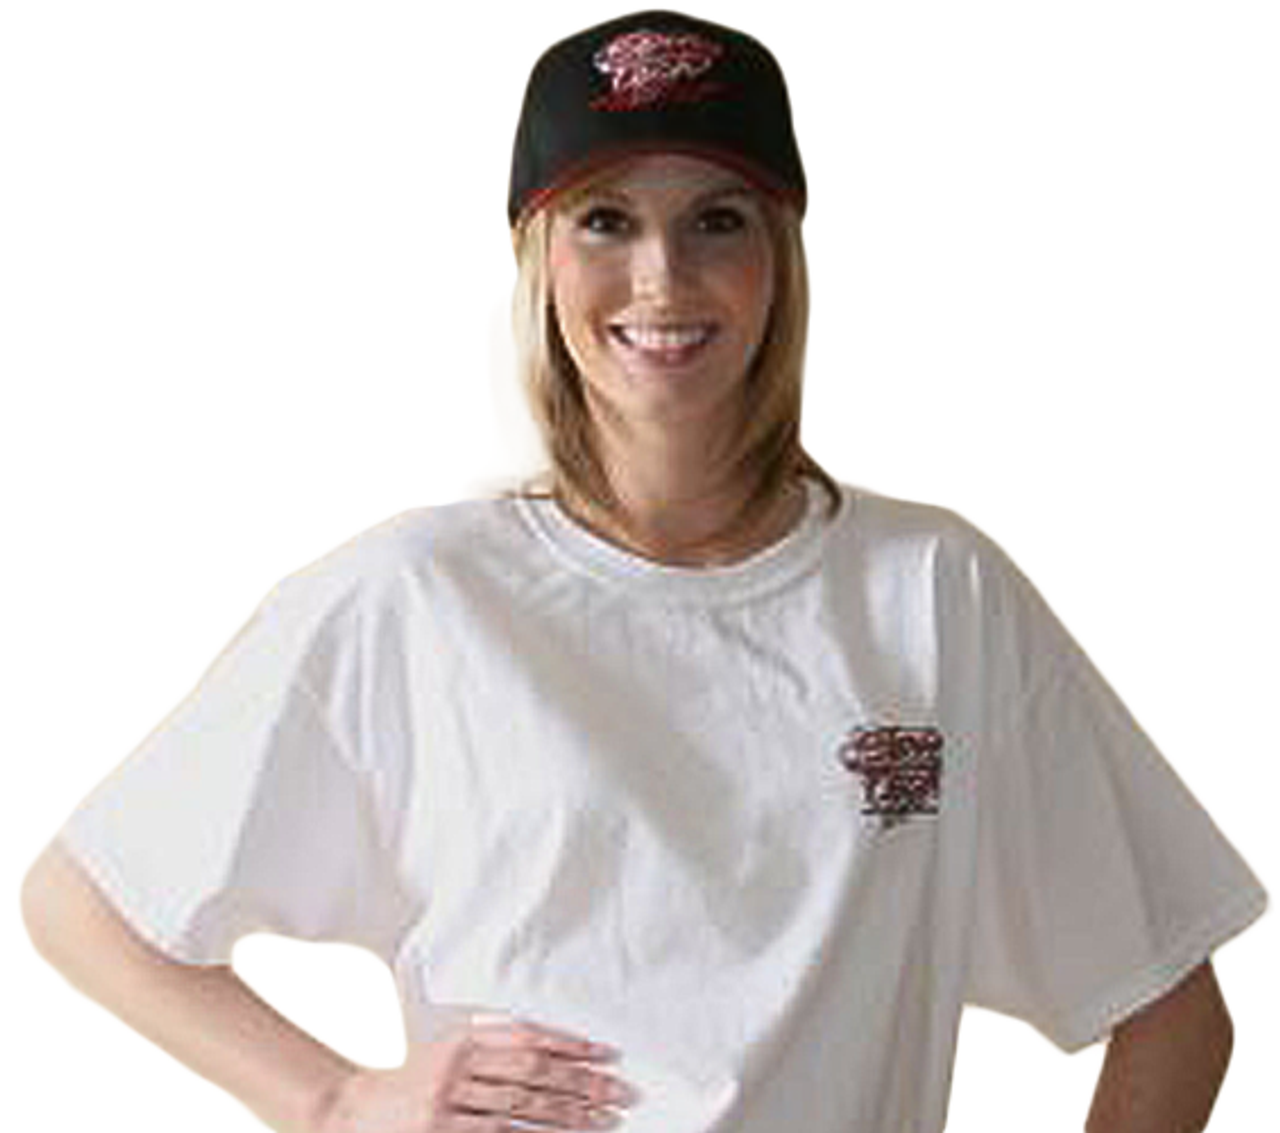 SpinTech Girl Wearing a White T Shirt